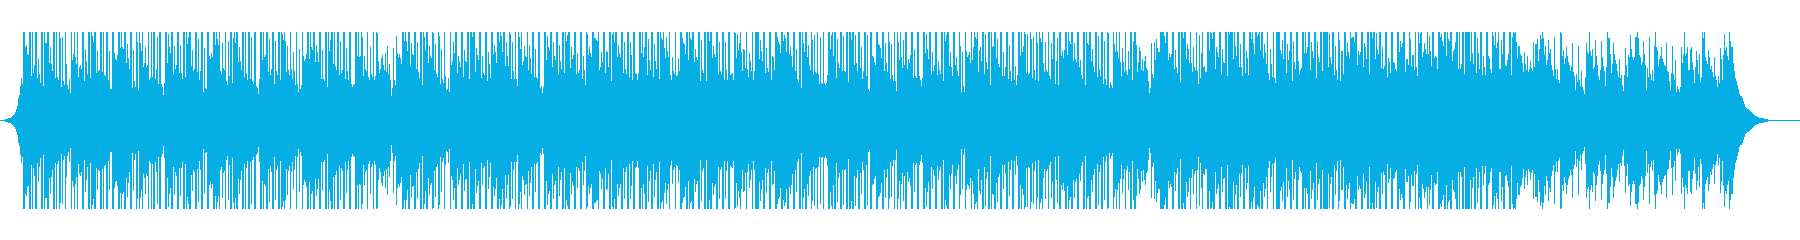 To Explain's reproduced waveform